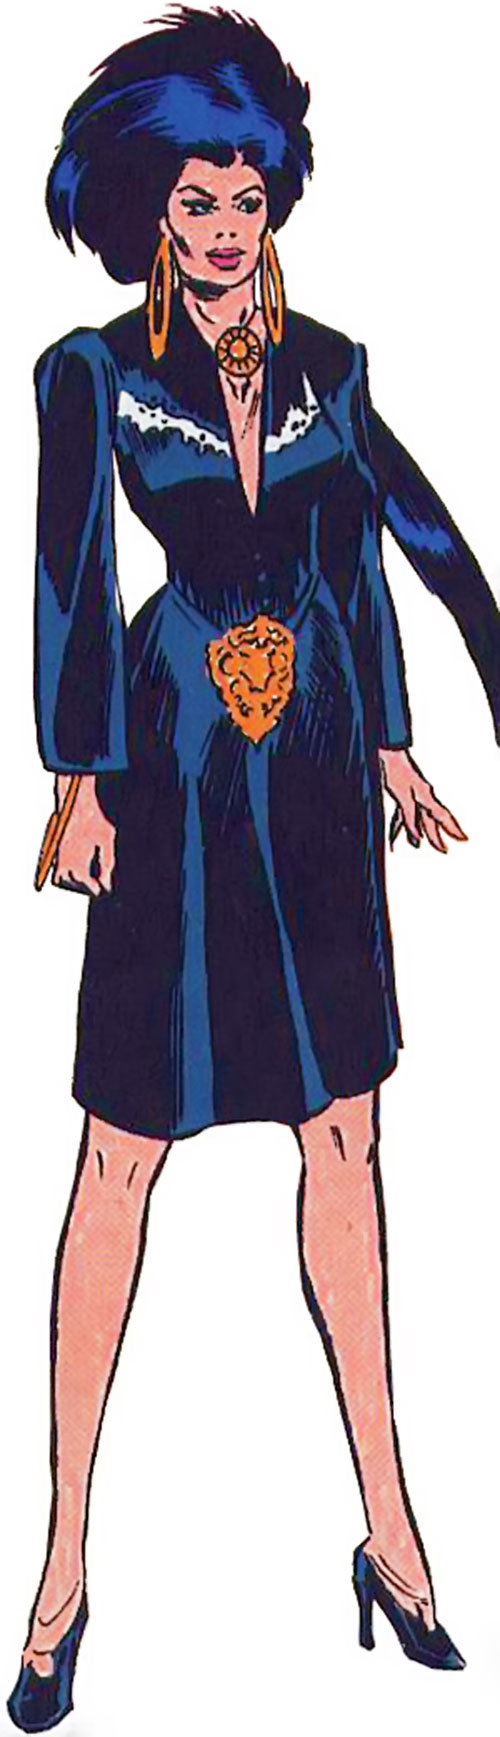 Shadowoman of the Secret Defenders (Marvel Comics) in a black gothy dress